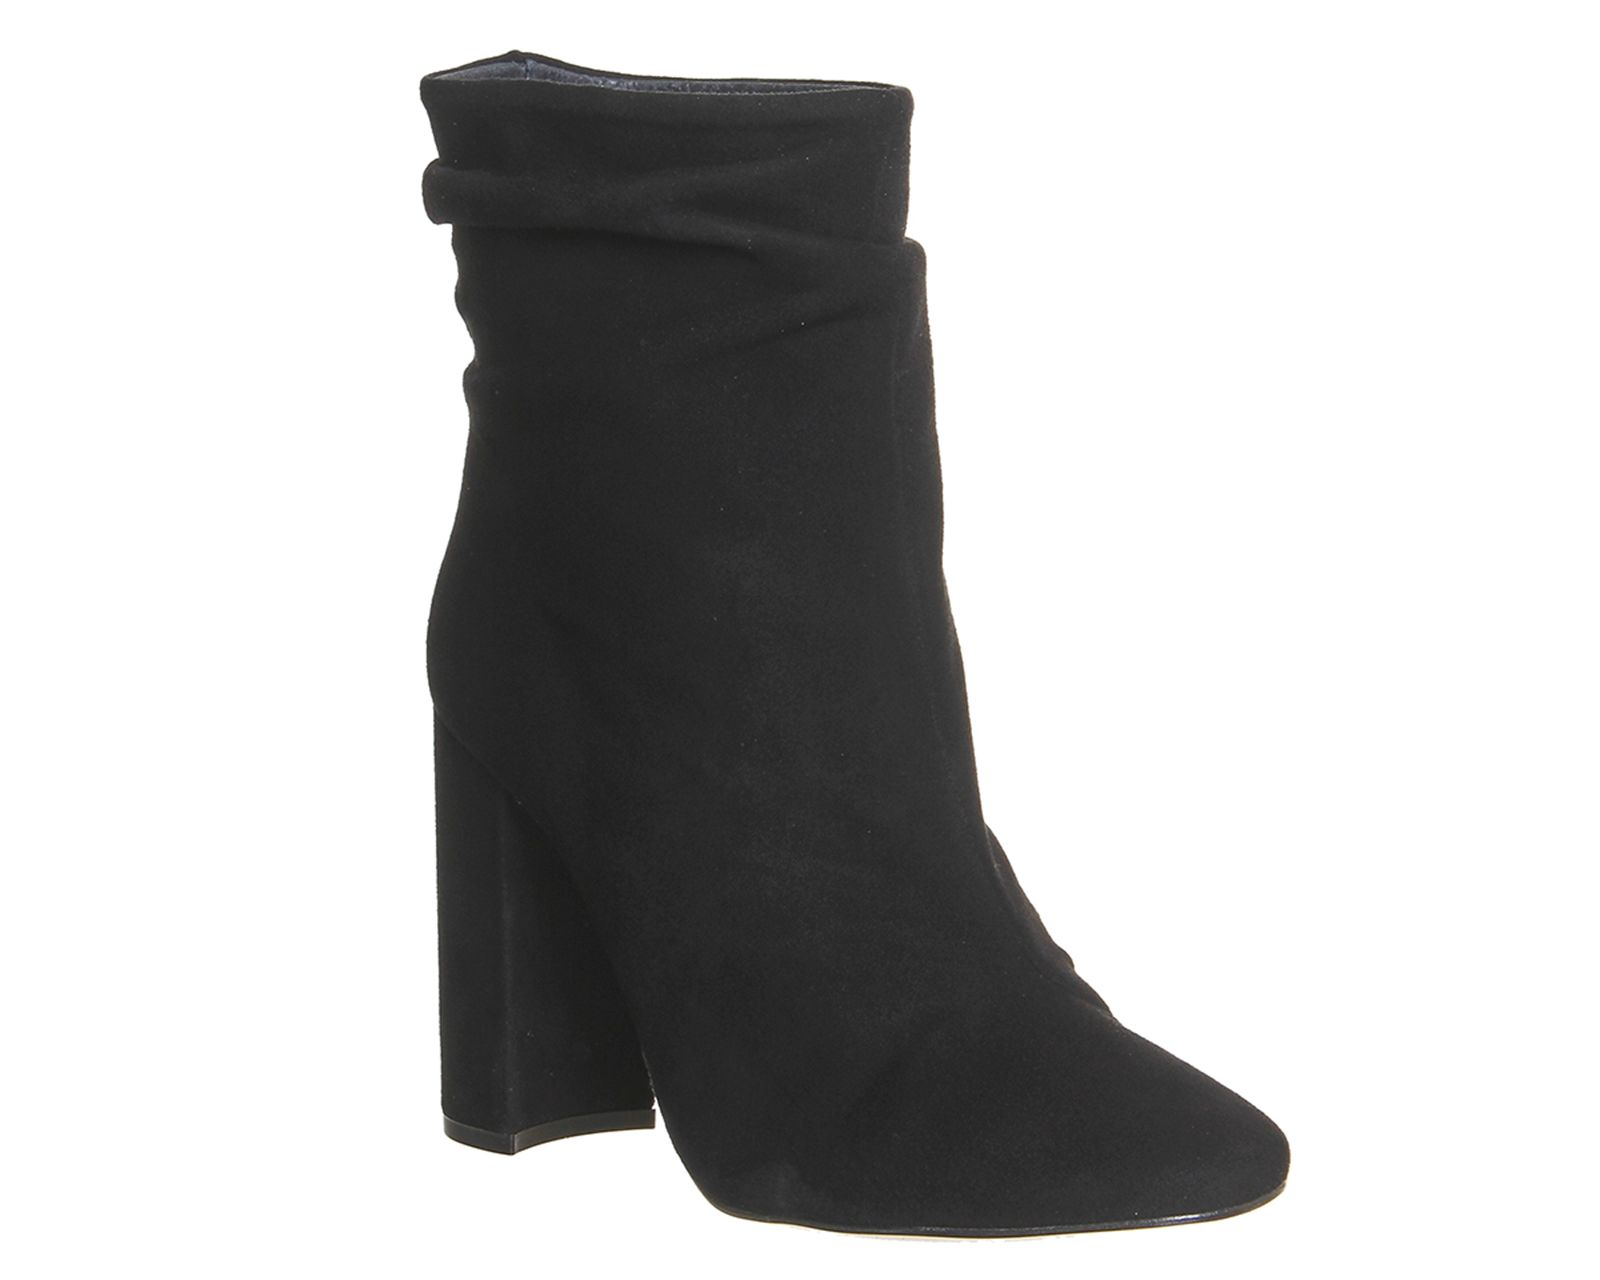 Office Infamous slouch ankle boots Black Suede